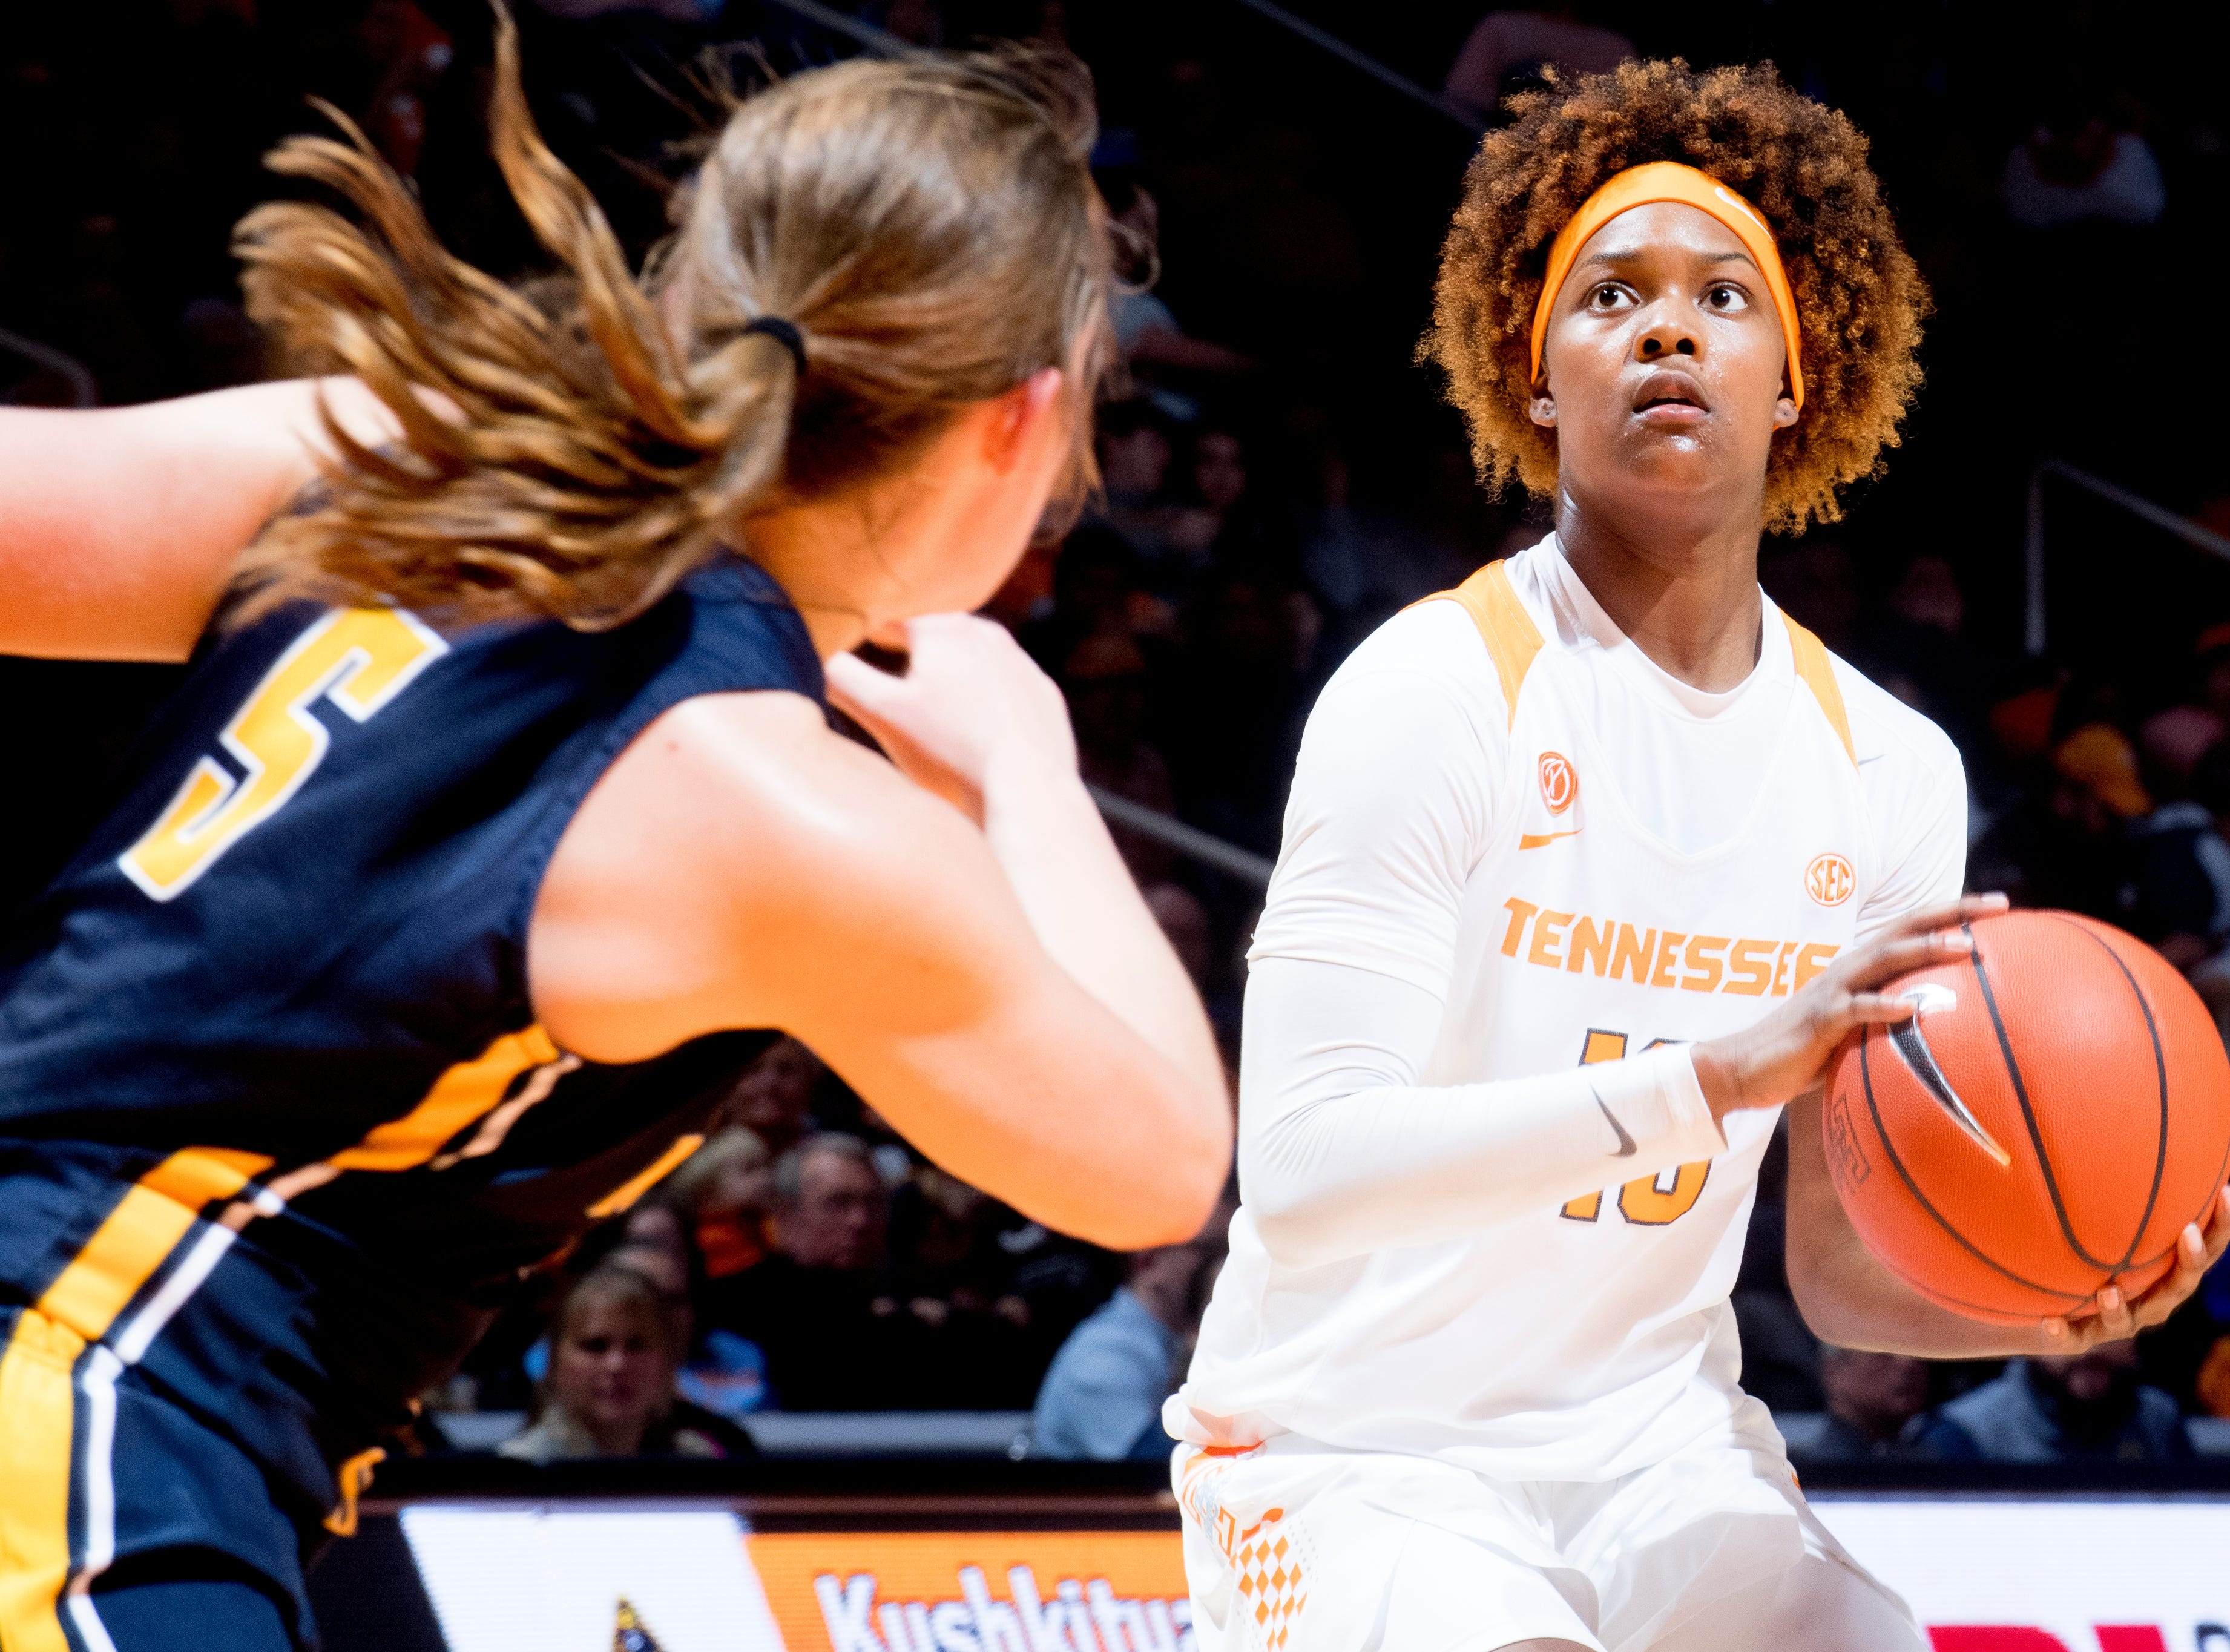 Tennessee guard Jazmine Massengill (13) looks to shoot as Murray State guard Macey Turley (5) defends during a game between the Tennessee Lady Vols and Murray State at Thompson-Boling Arena in Knoxville, Tennessee on Friday, December 28, 2018.